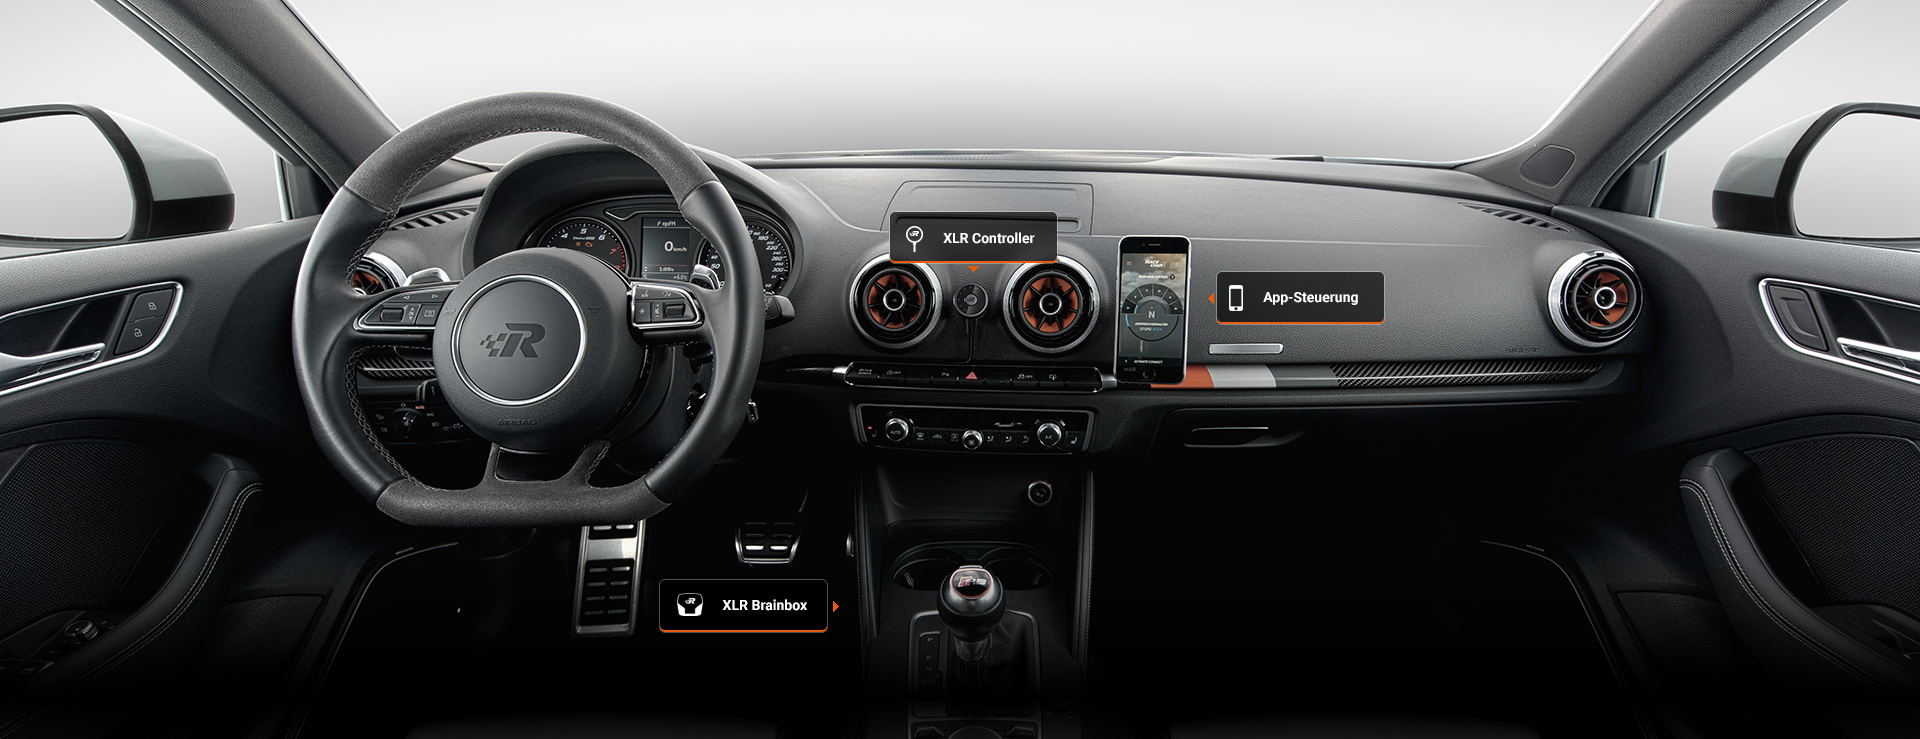 gaspedal tuning racechip xlr app pedalbox opel agila. Black Bedroom Furniture Sets. Home Design Ideas